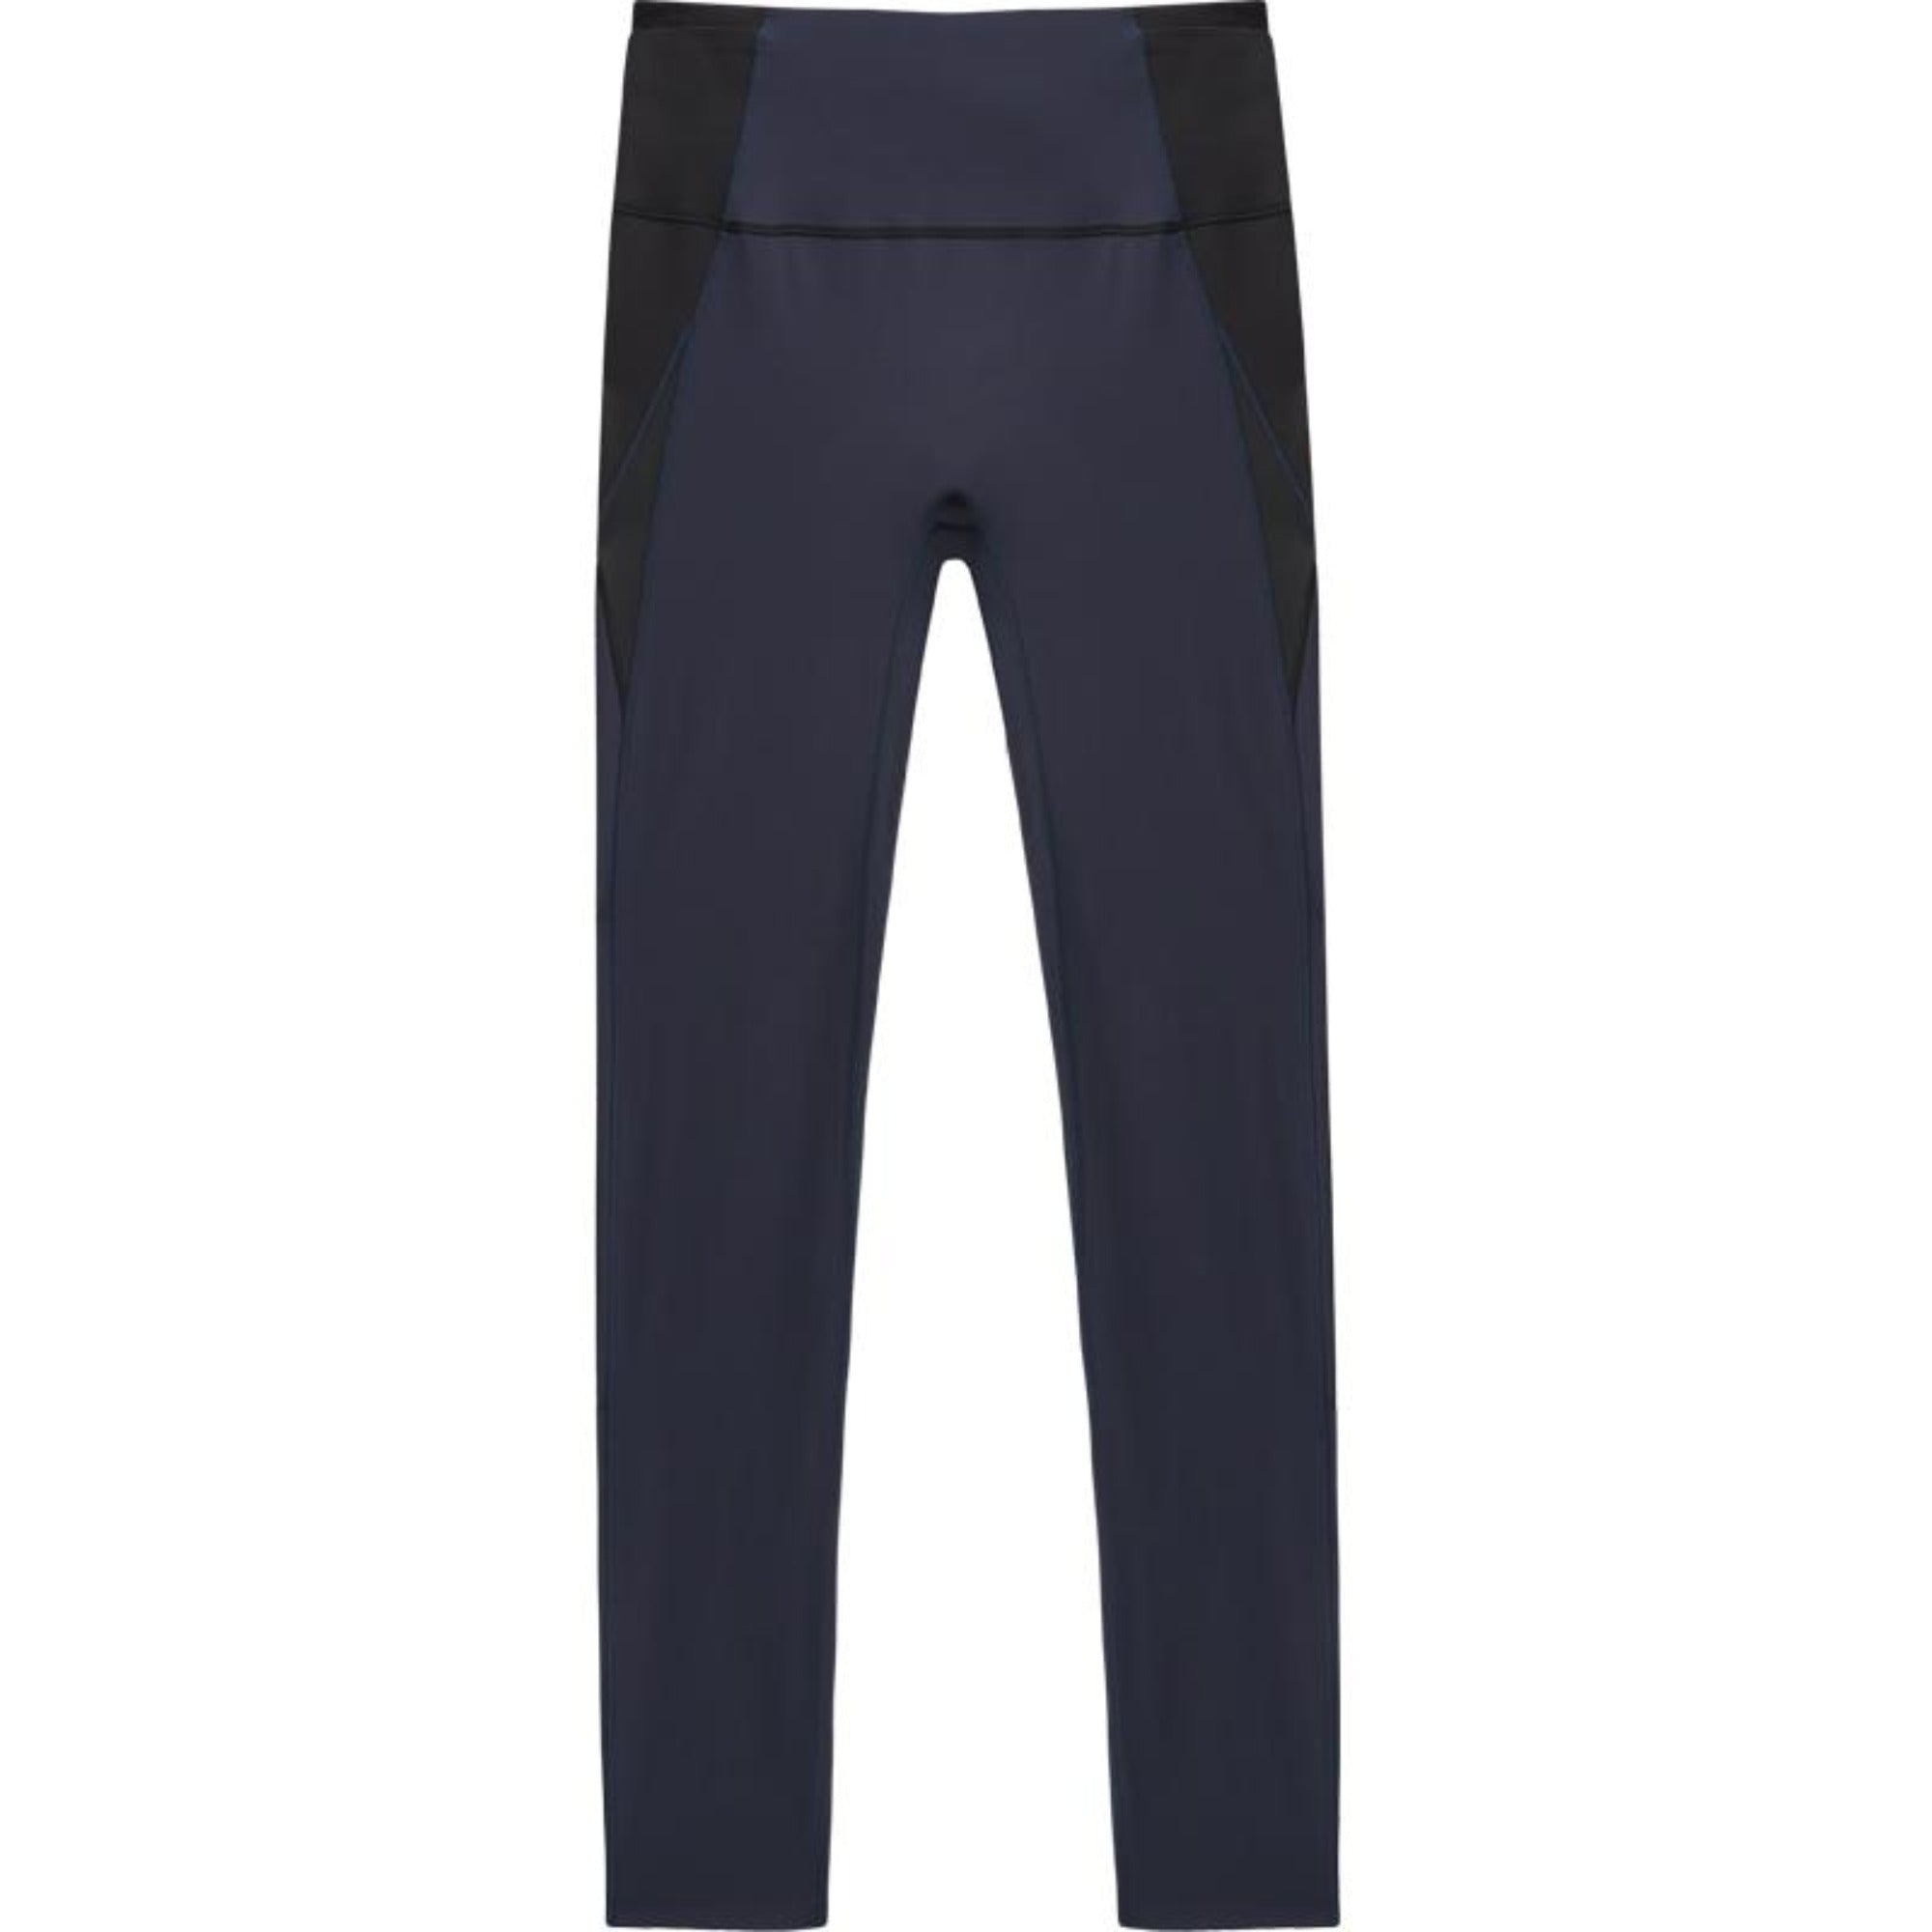 NEIWAI ACTIVE High-Waist Mesh Leggings in Dark Blue